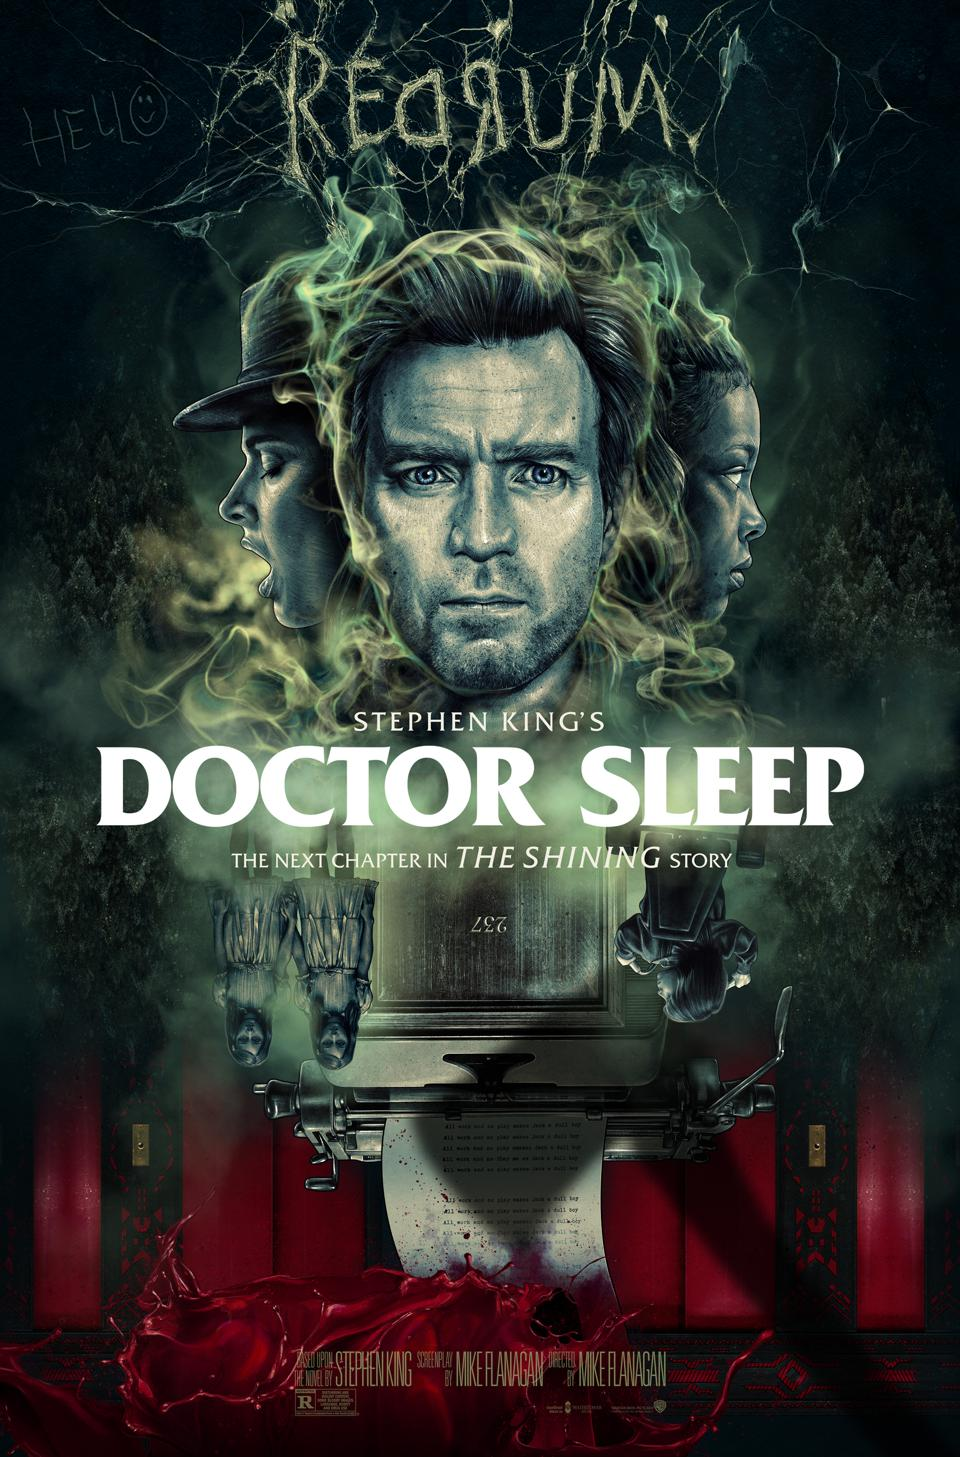 Fandango To Sneak Preview Doctor Sleep Just In Time For Halloween